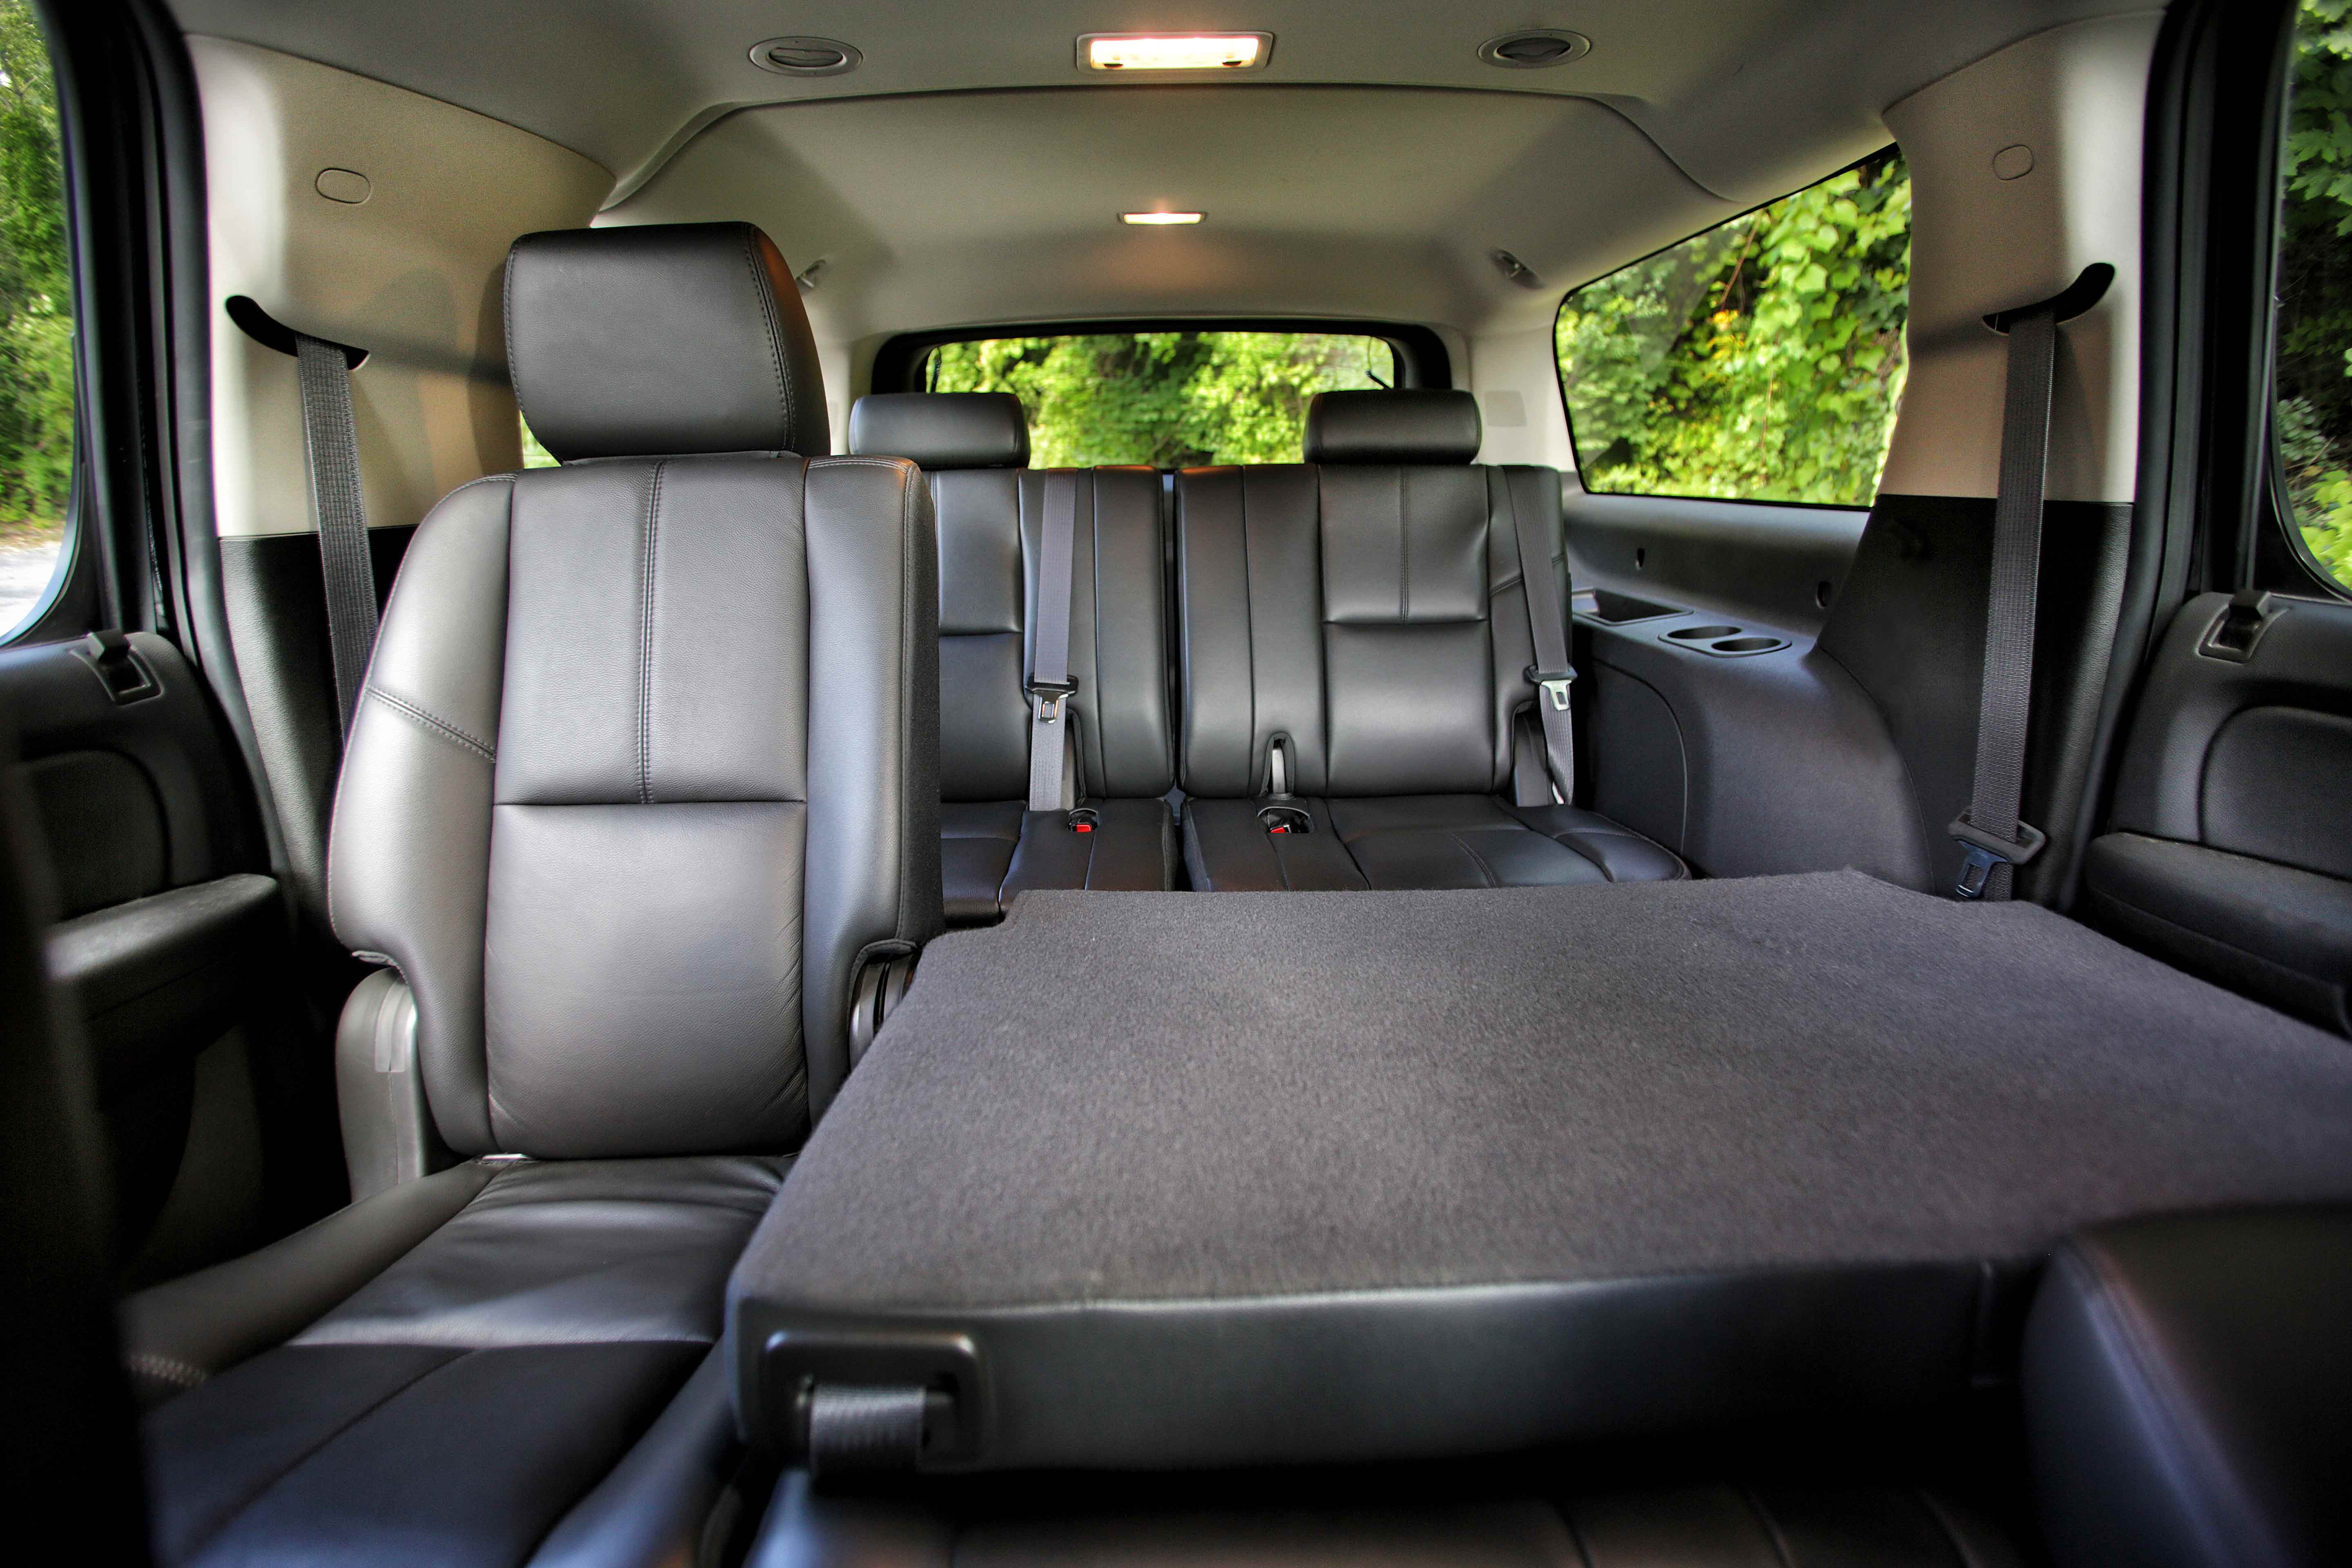 SUV interior with seat folded down